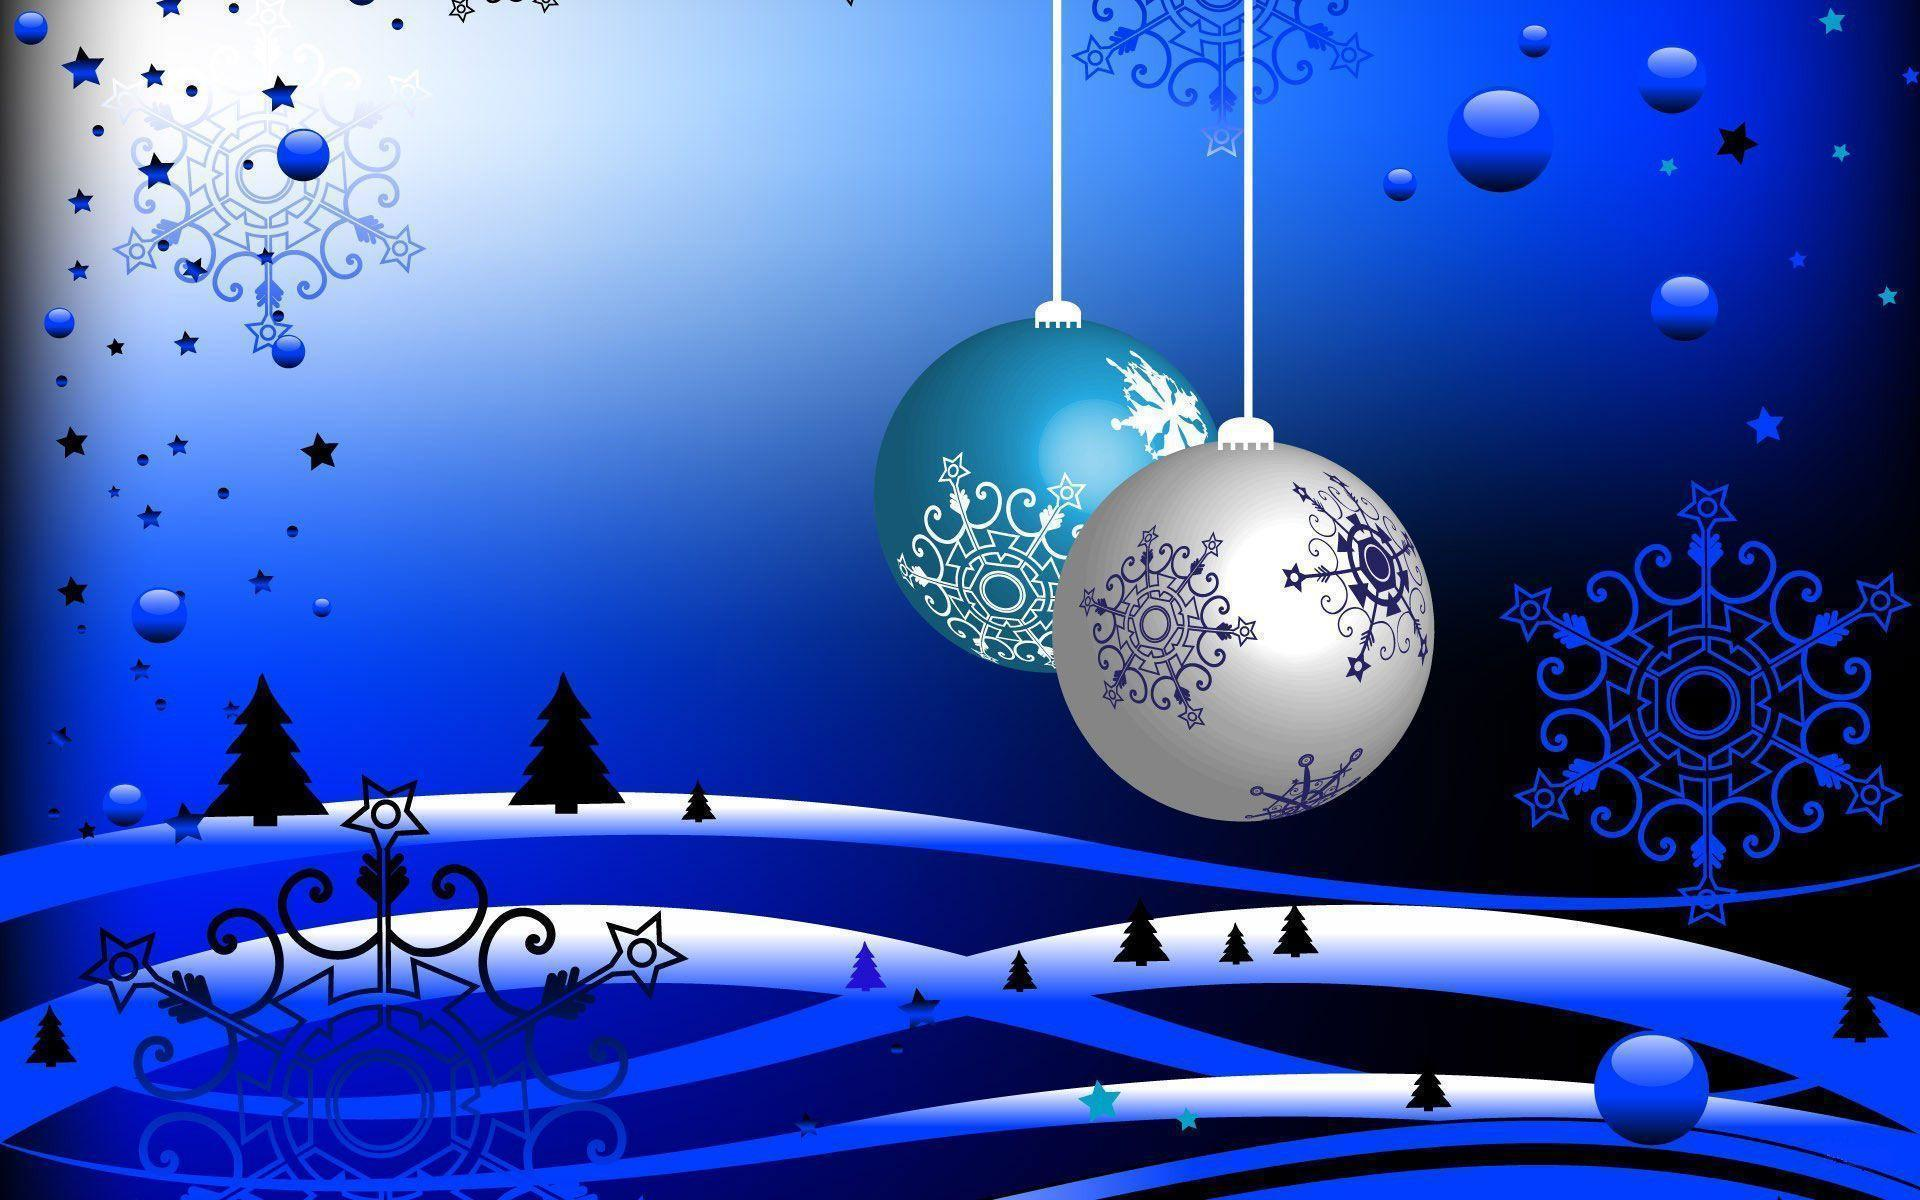 HD Christmas Desktop Backgrounds - Wallpaper Cave